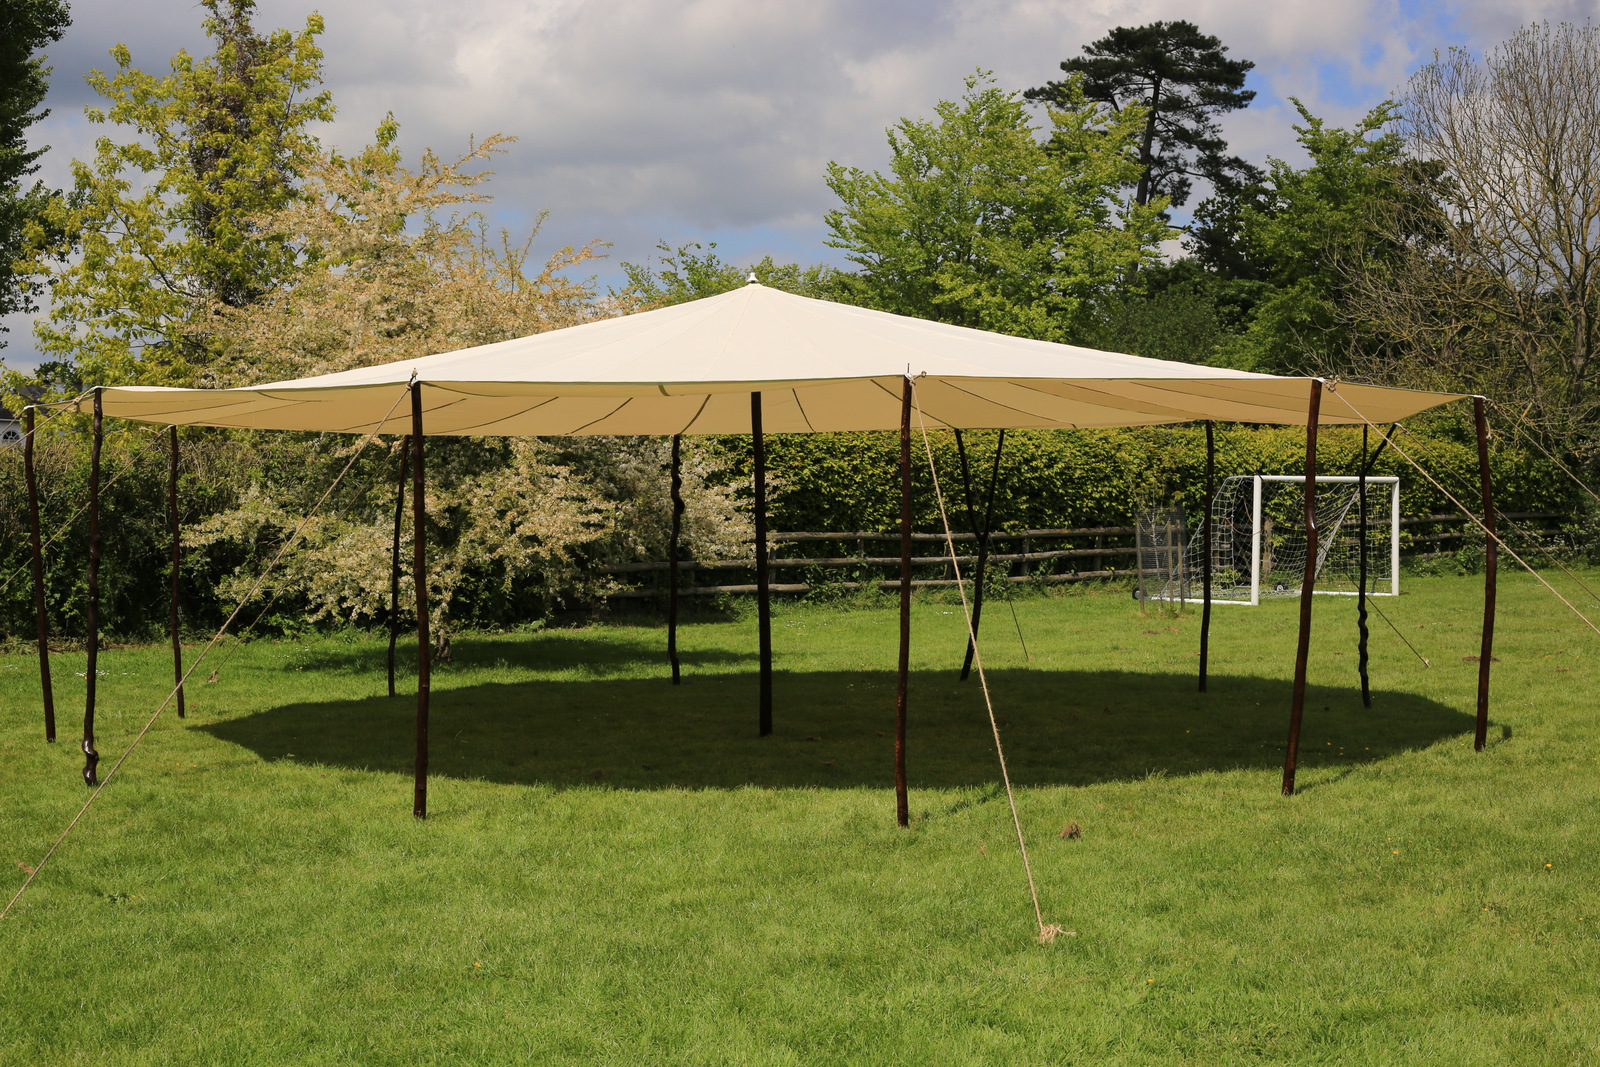 This is our beautiful new canopy we are hiring out for a undercover ceromony Space,it can seat 90 - 100 people,ideal for a hot summers day to keep out of the sun